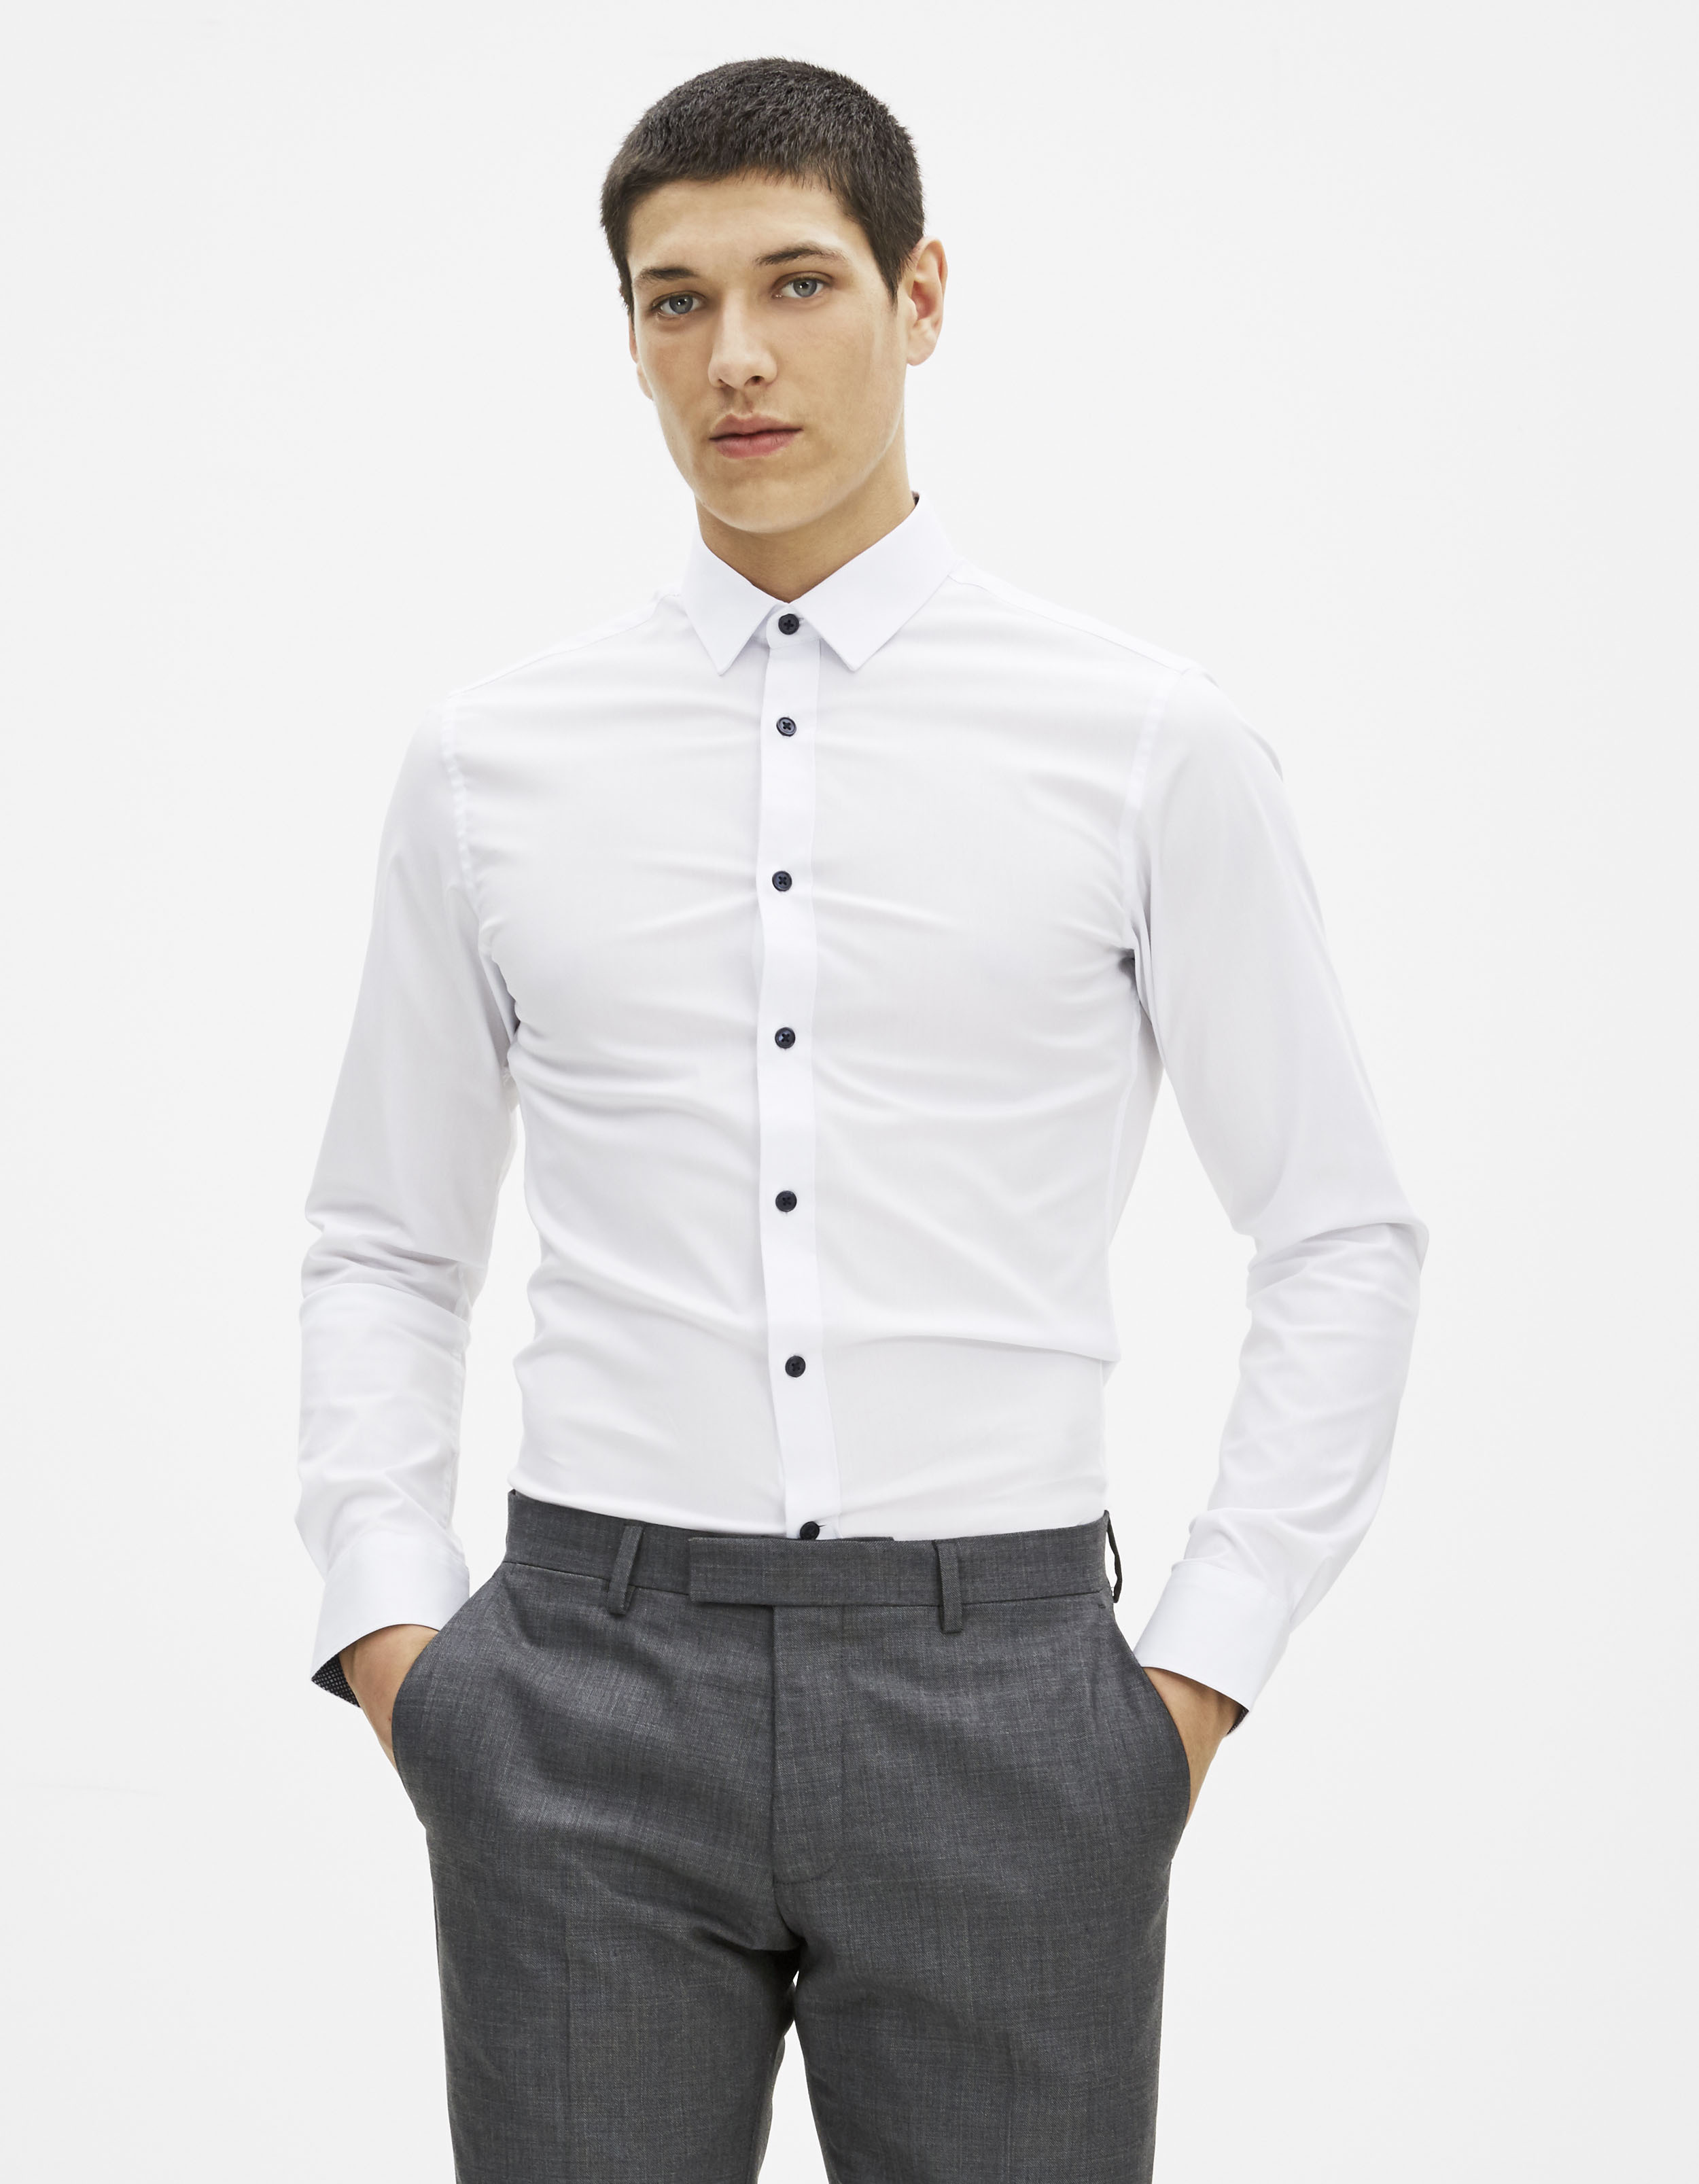 Find great deals on eBay for chemise pour homme. Shop with confidence.